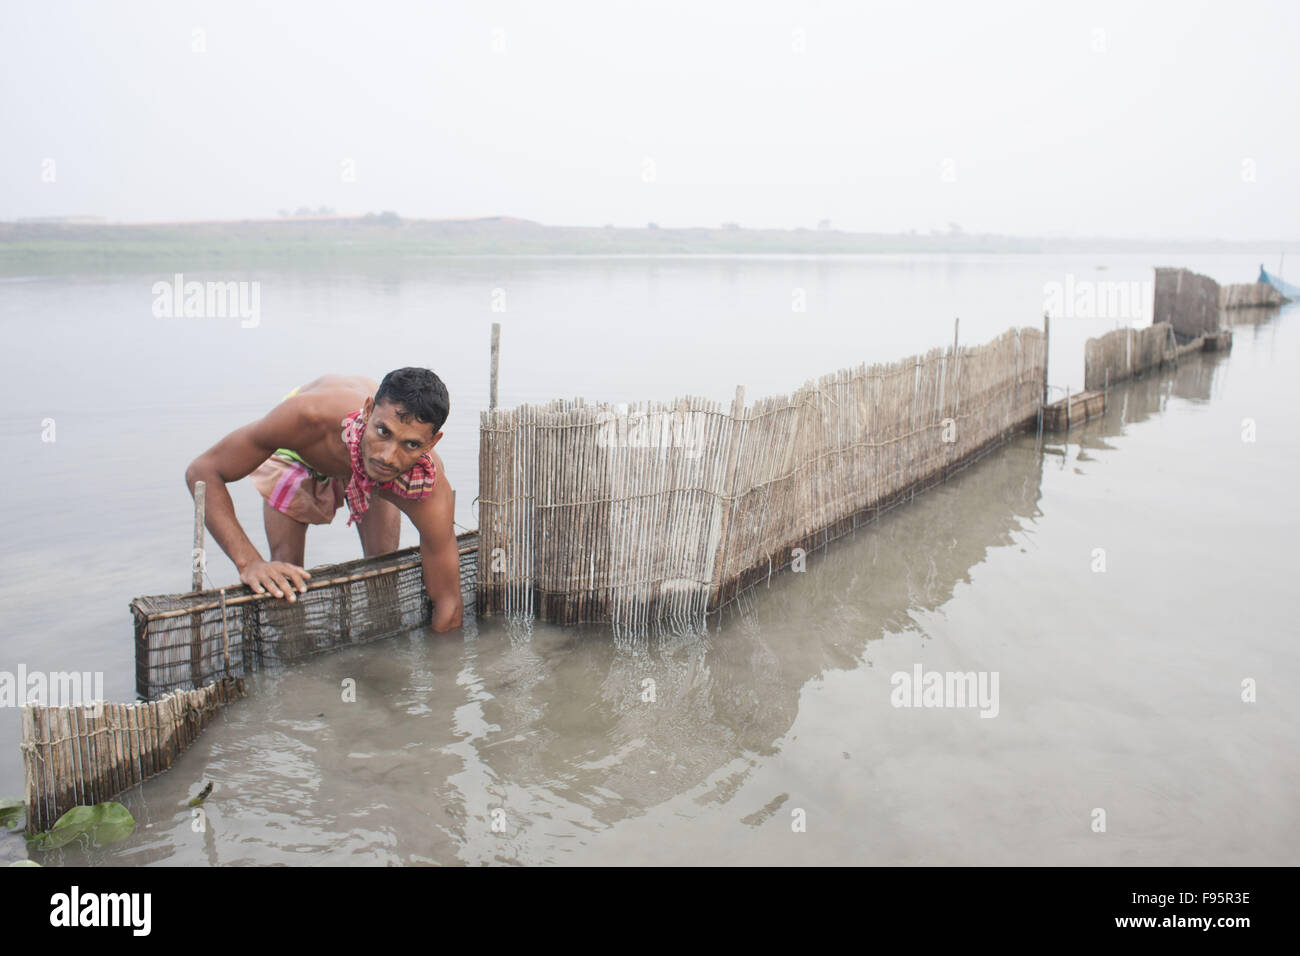 Dhaka, Bangladesh. 14th Dec, 2015. A Bangladeshi fisher man sets fish trap for catch fish at Savar, near Dhaka, - Stock Image